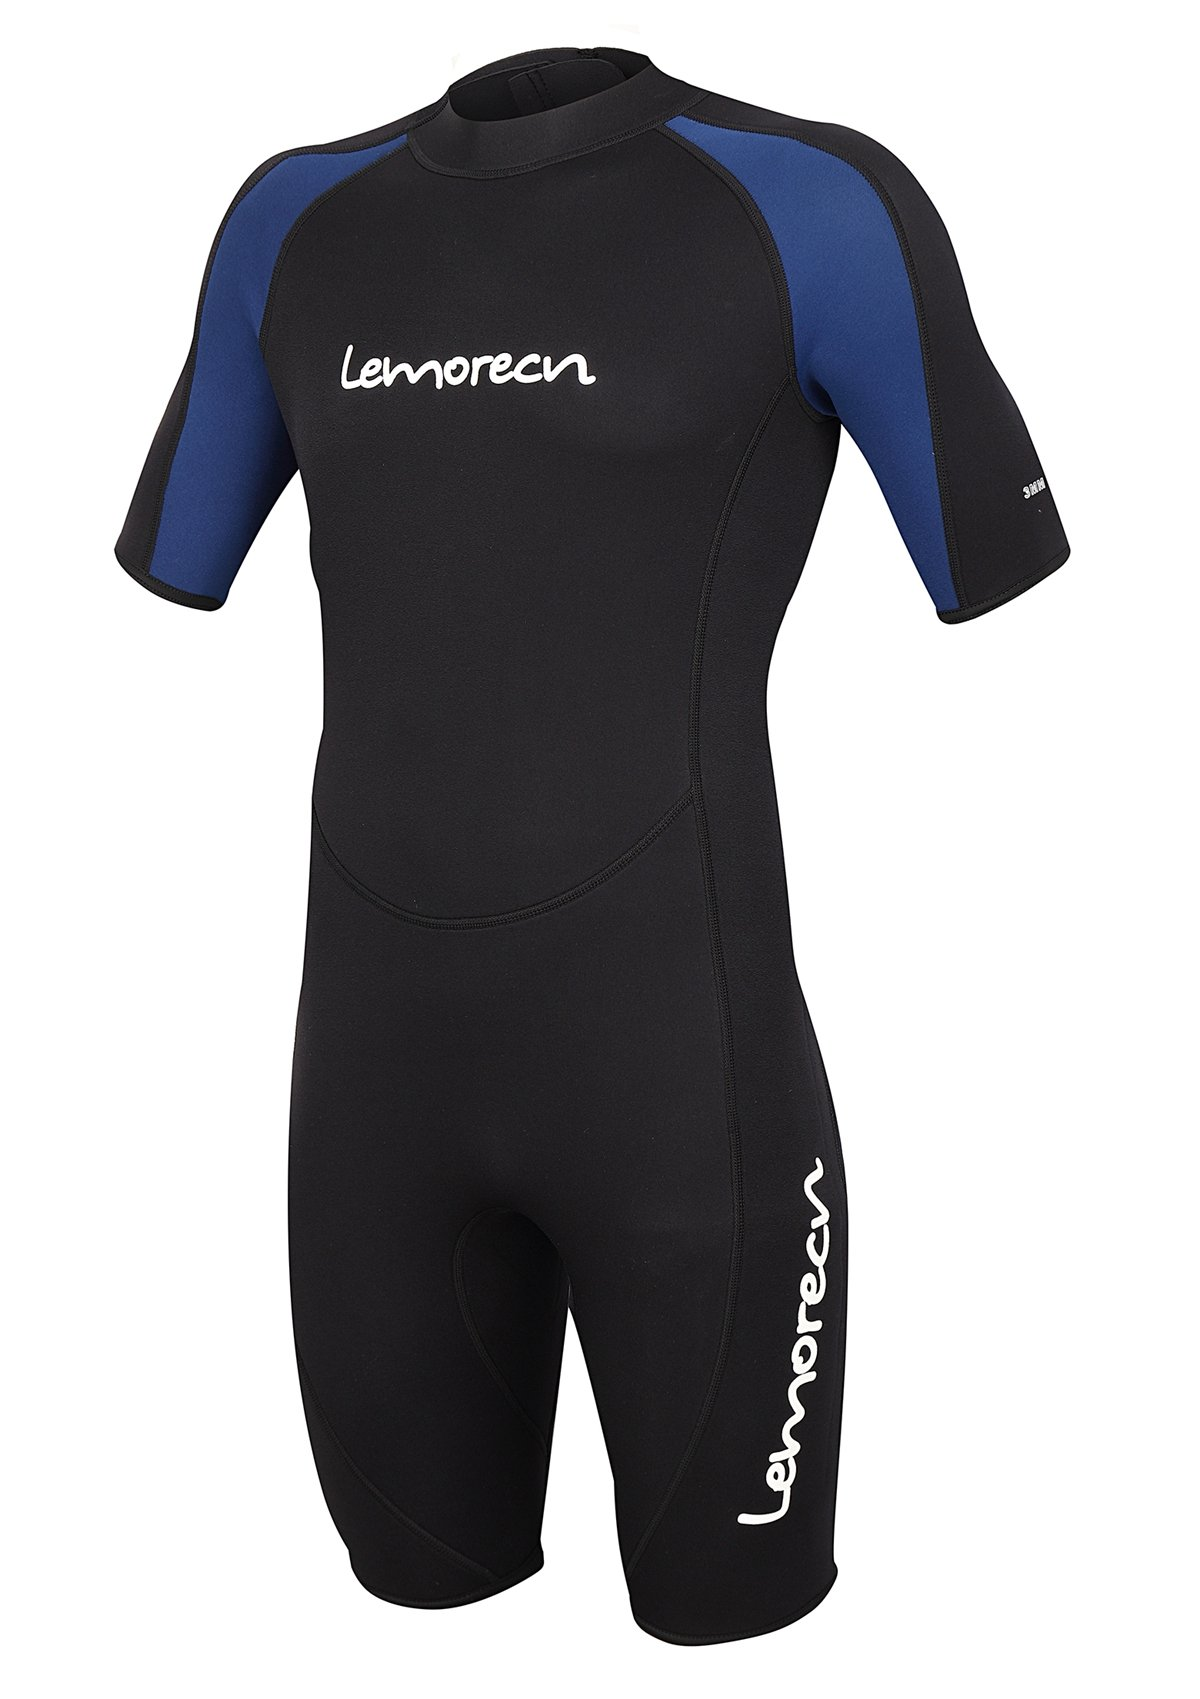 Lemorecn Wetsuits Mens Premium Neoprene Diving Suit 3mm Shorty Jumpsuit(3035,M) by Lemorecn